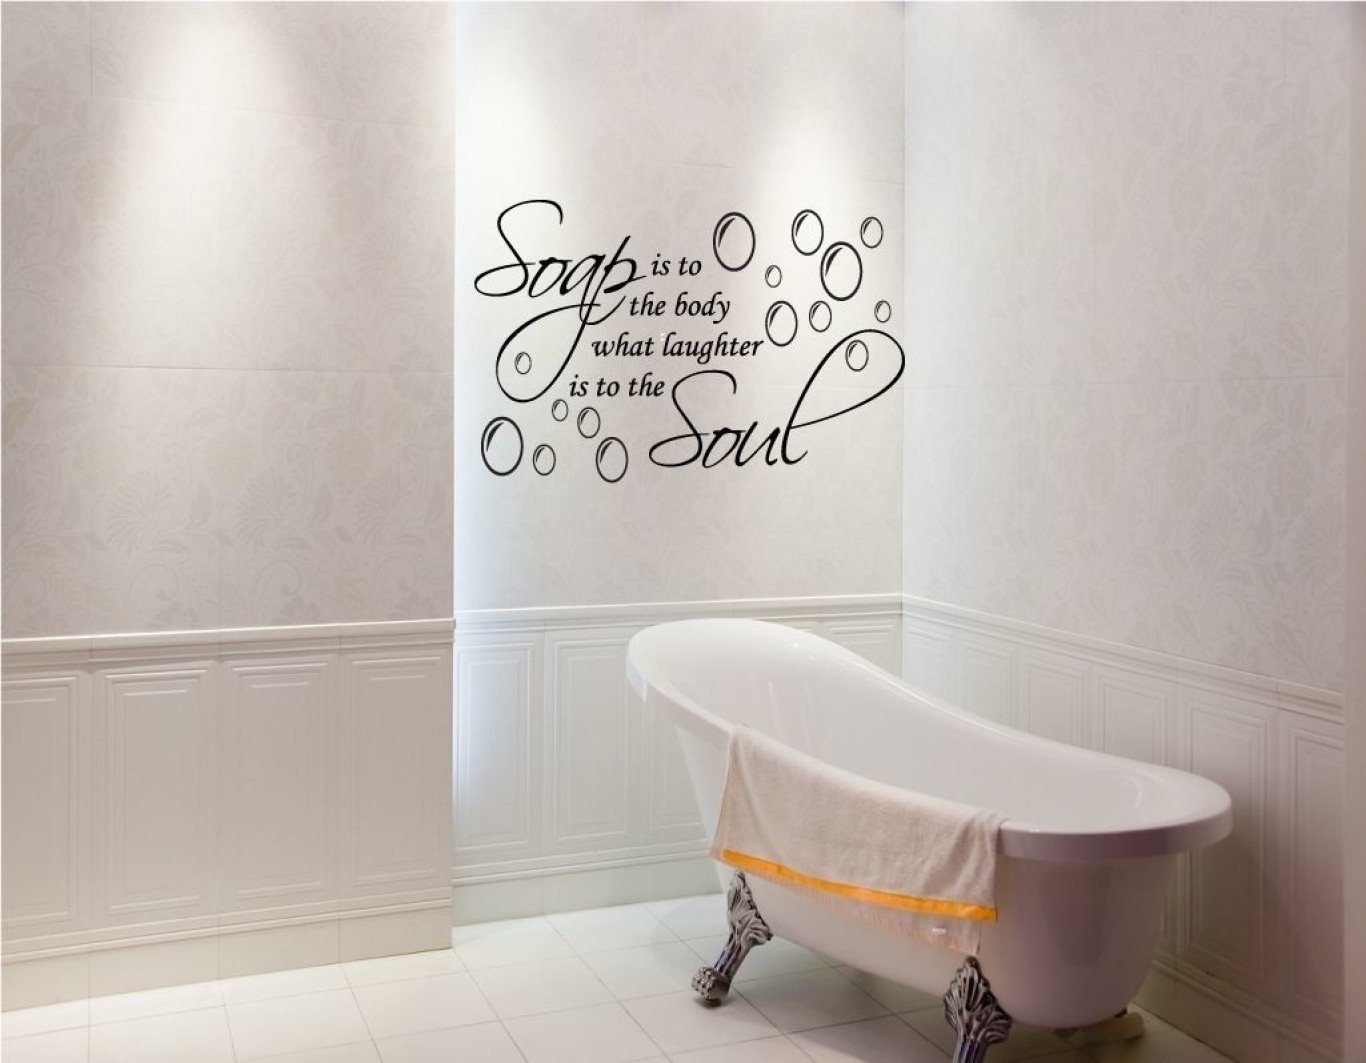 Bathroom Wall Decor In Most Recently Released Wall Accents For Bathroom (View 3 of 15)